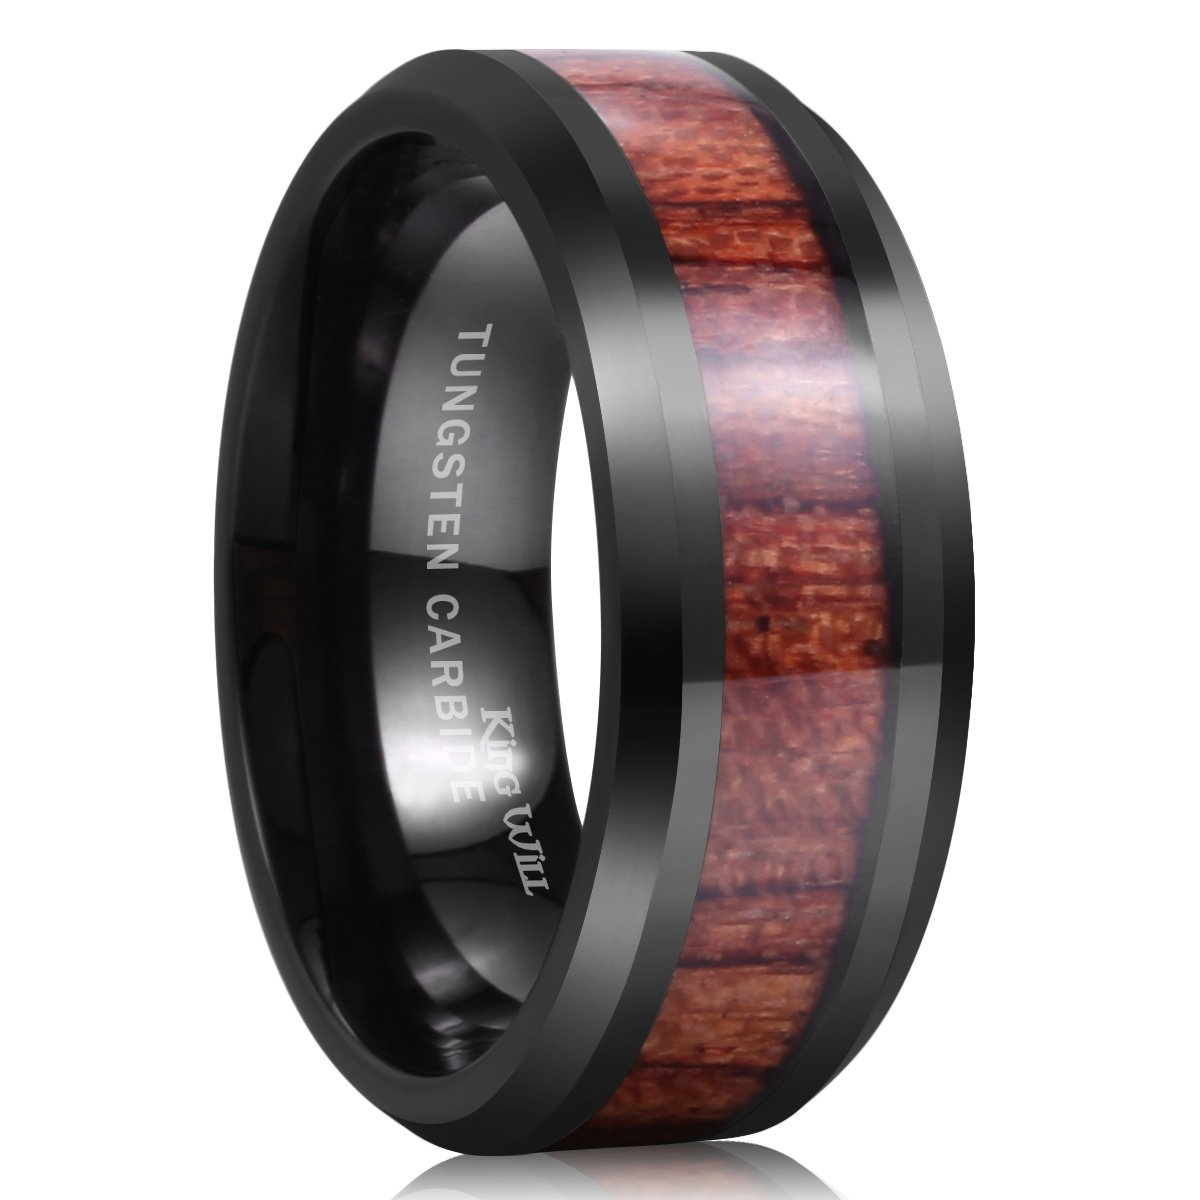 King Will Nature 8mm Black Tungsten Carbide Ring Wood Inlay Wedding Band High Polished Finish Fort Fit Amazon: Wooden Inlay Wedding Band At Websimilar.org